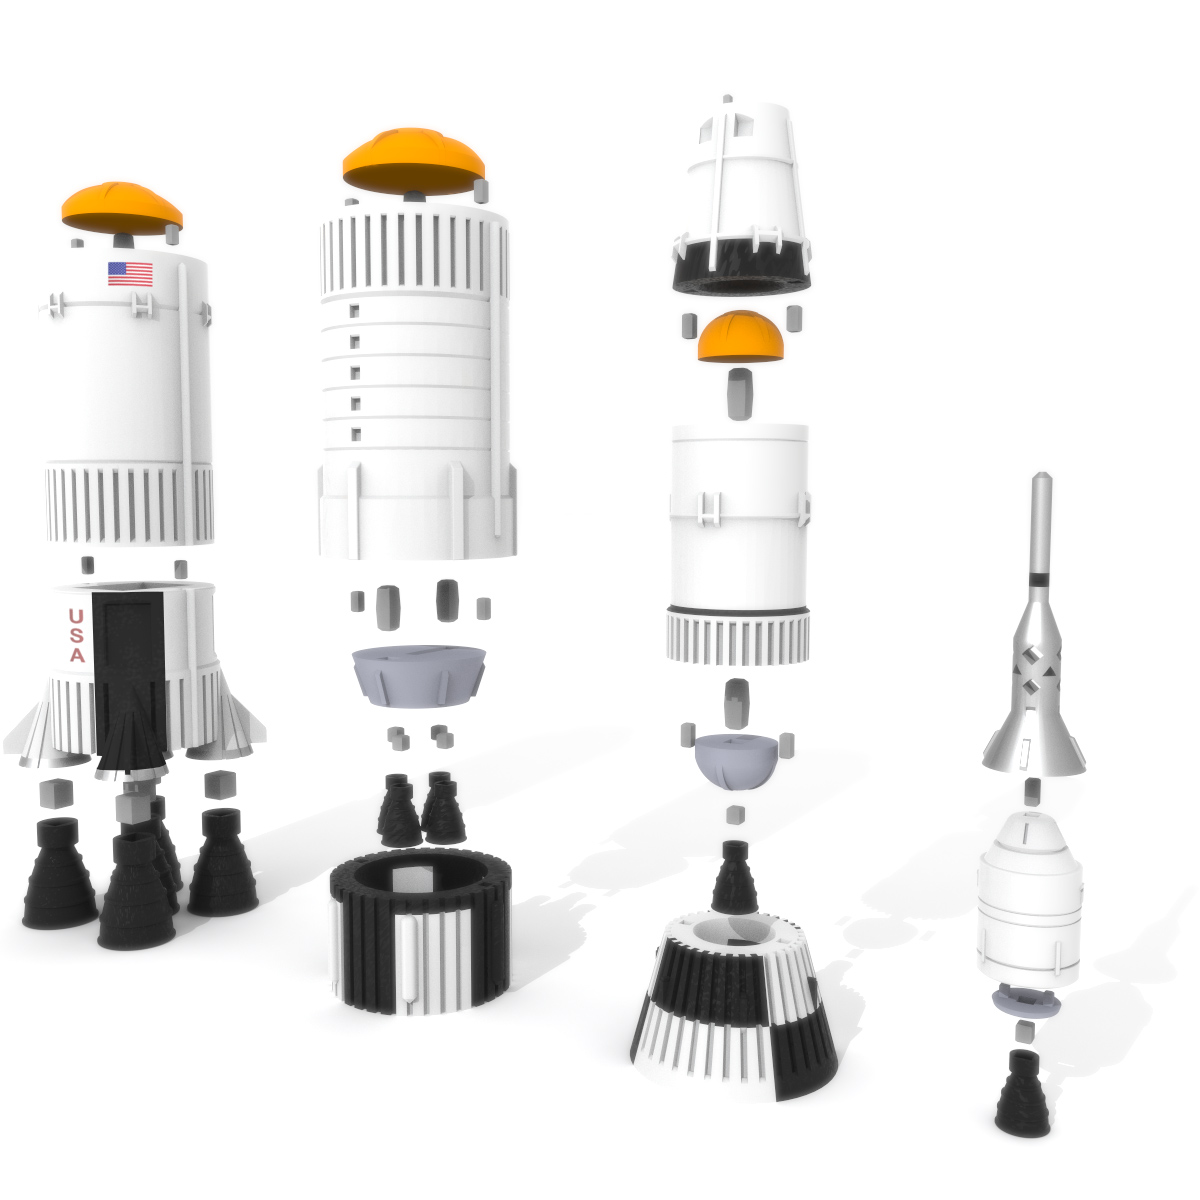 Saturn V Rocket Exploded, 3D Printer Models